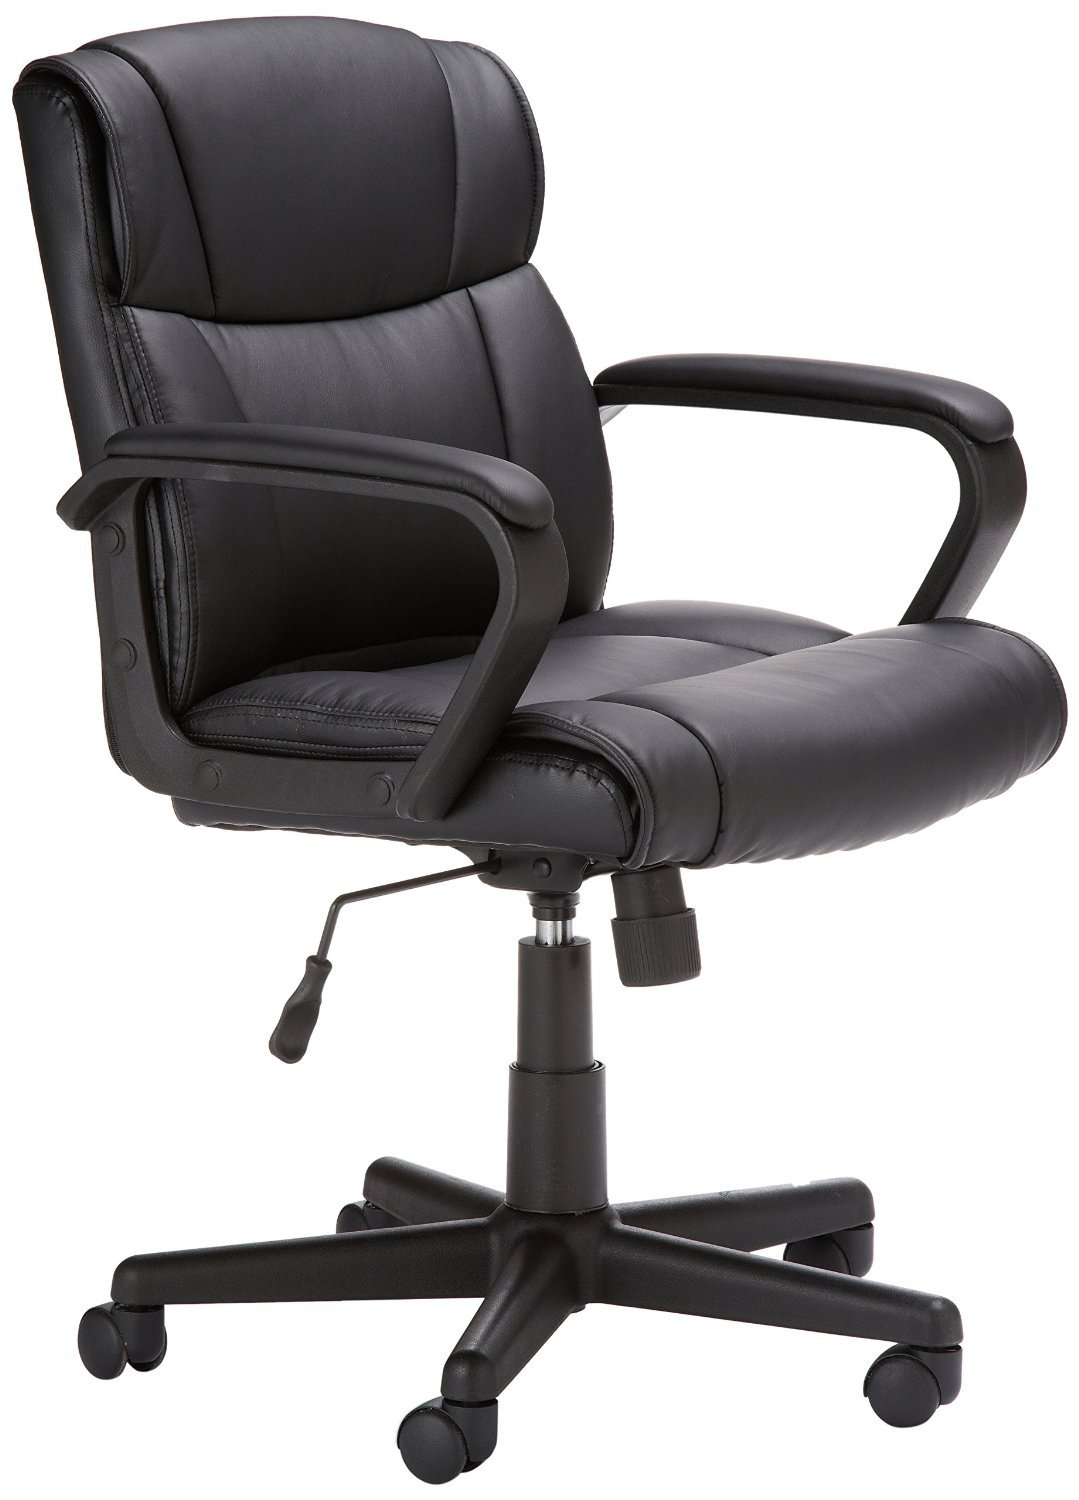 Top 10 Best Desk Chair